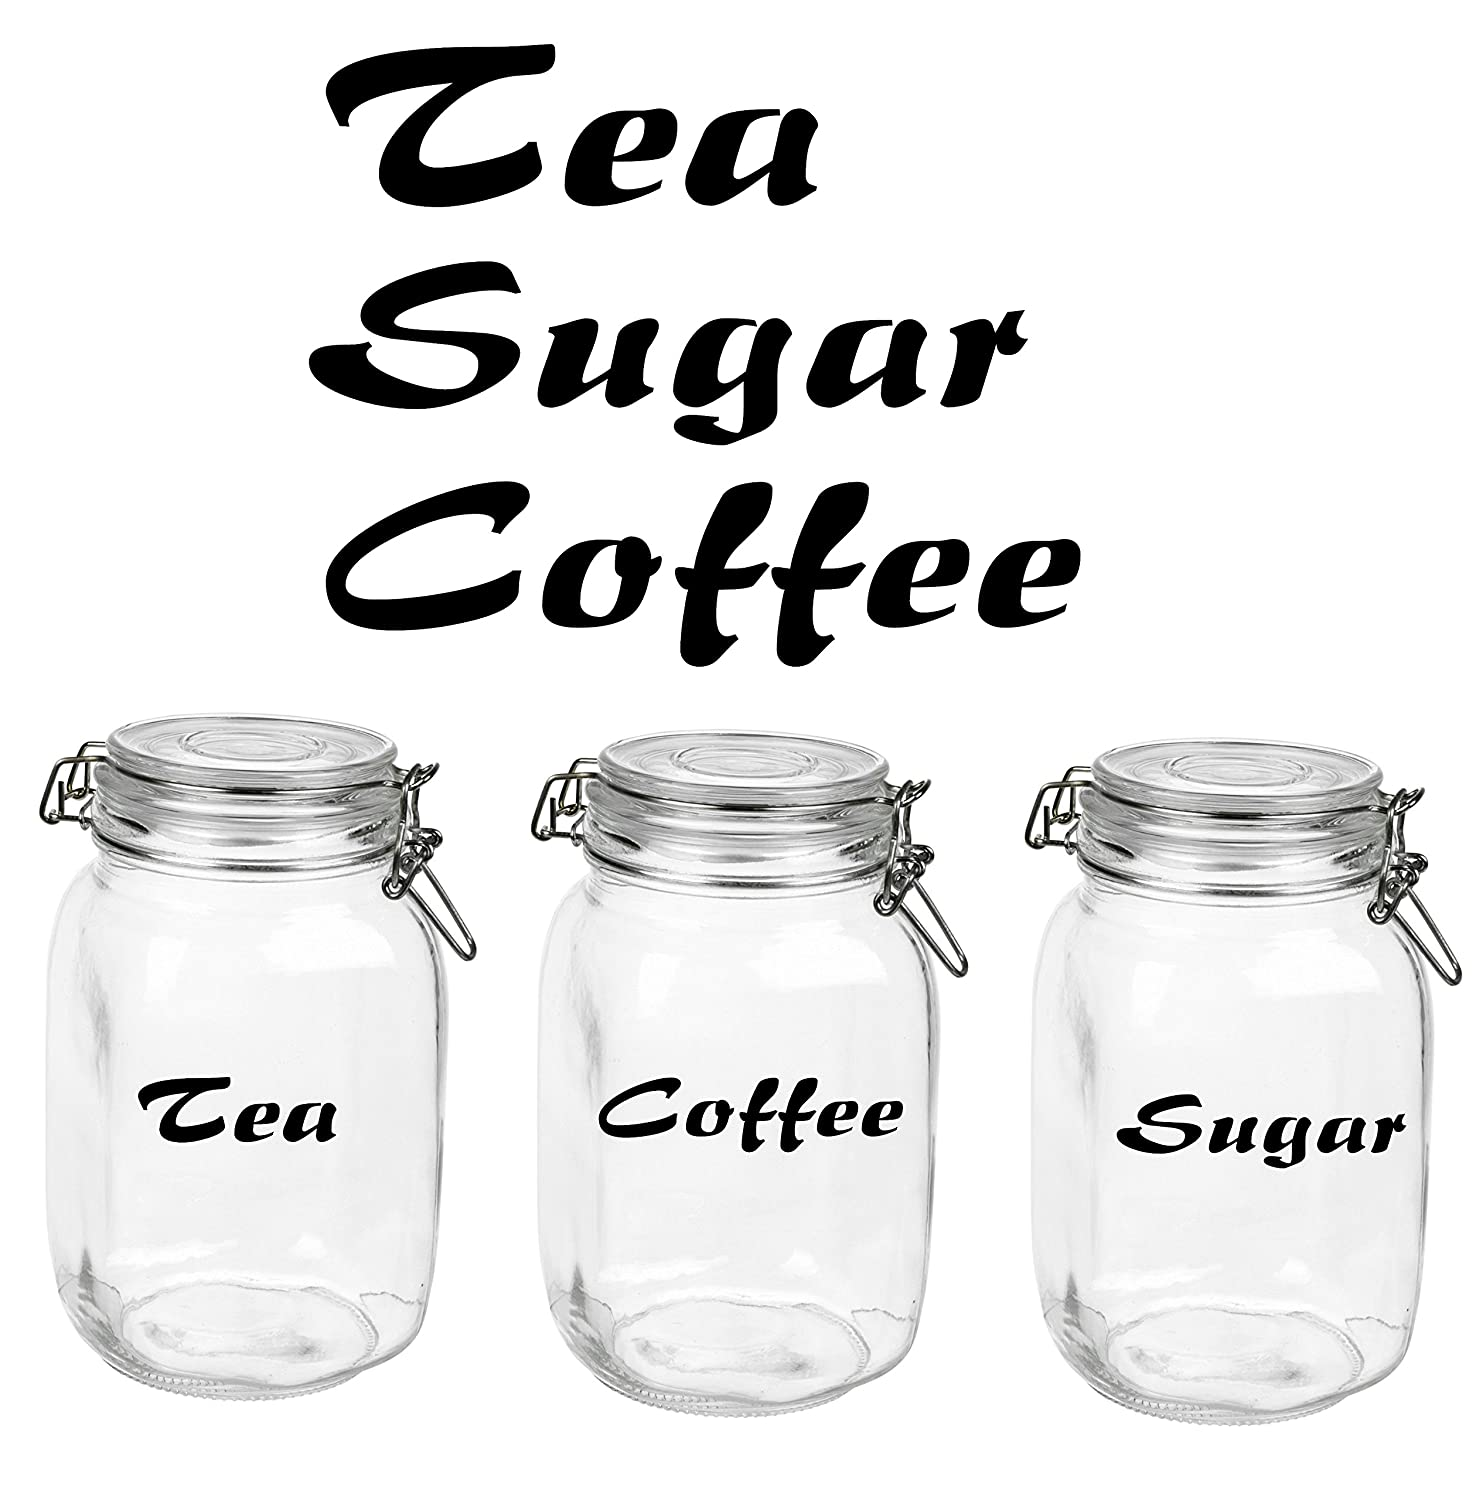 tea coffee sugar glass canister label stickers decals in black